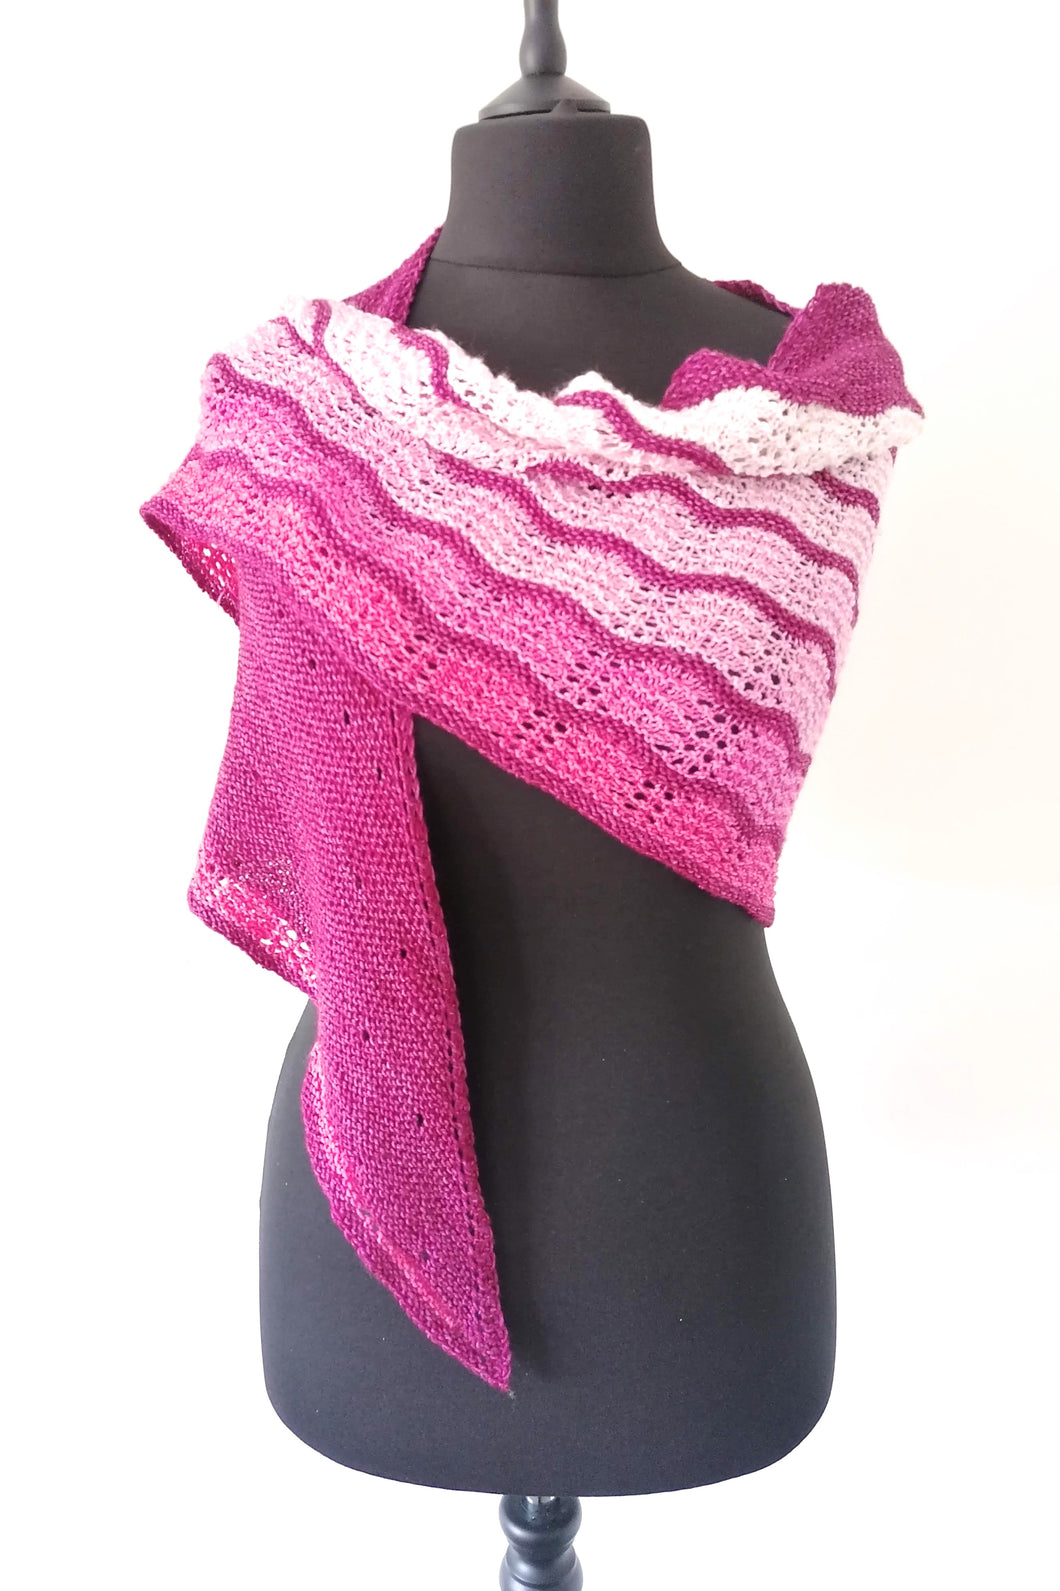 Hand knitted pink gradient shawl.